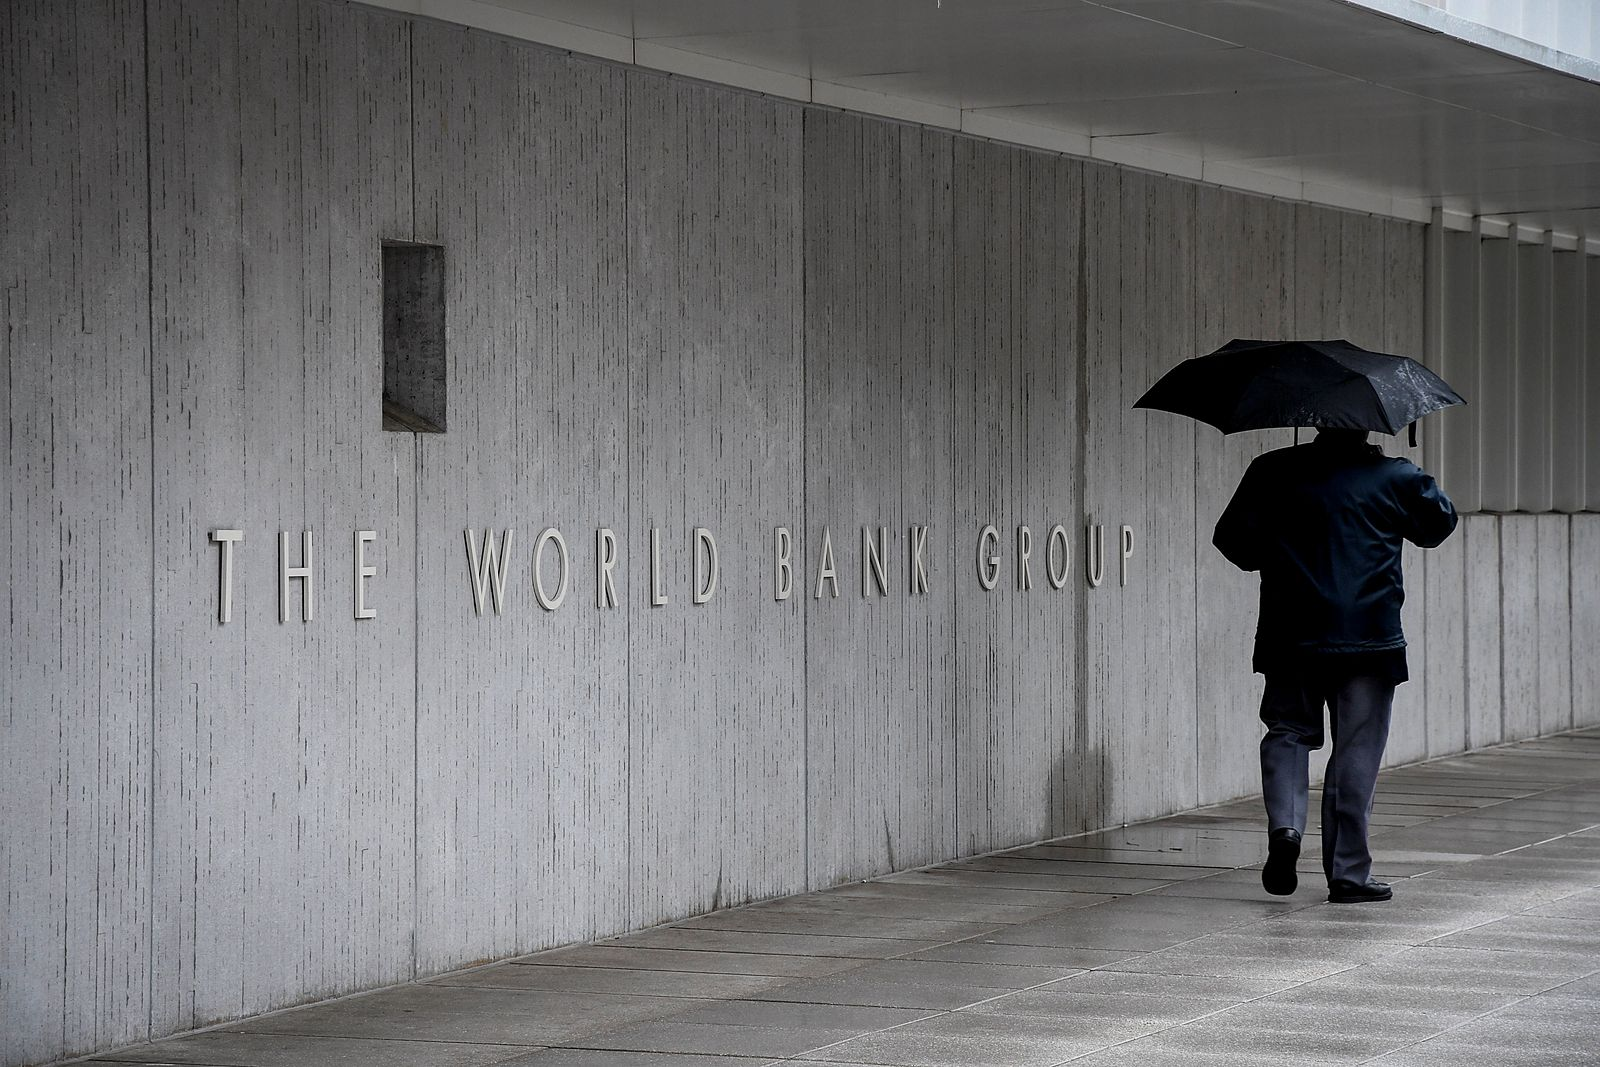 WASHINGTON D C District of Columbia USA 12 May 2019 The worlbank group and the worl bank buildi